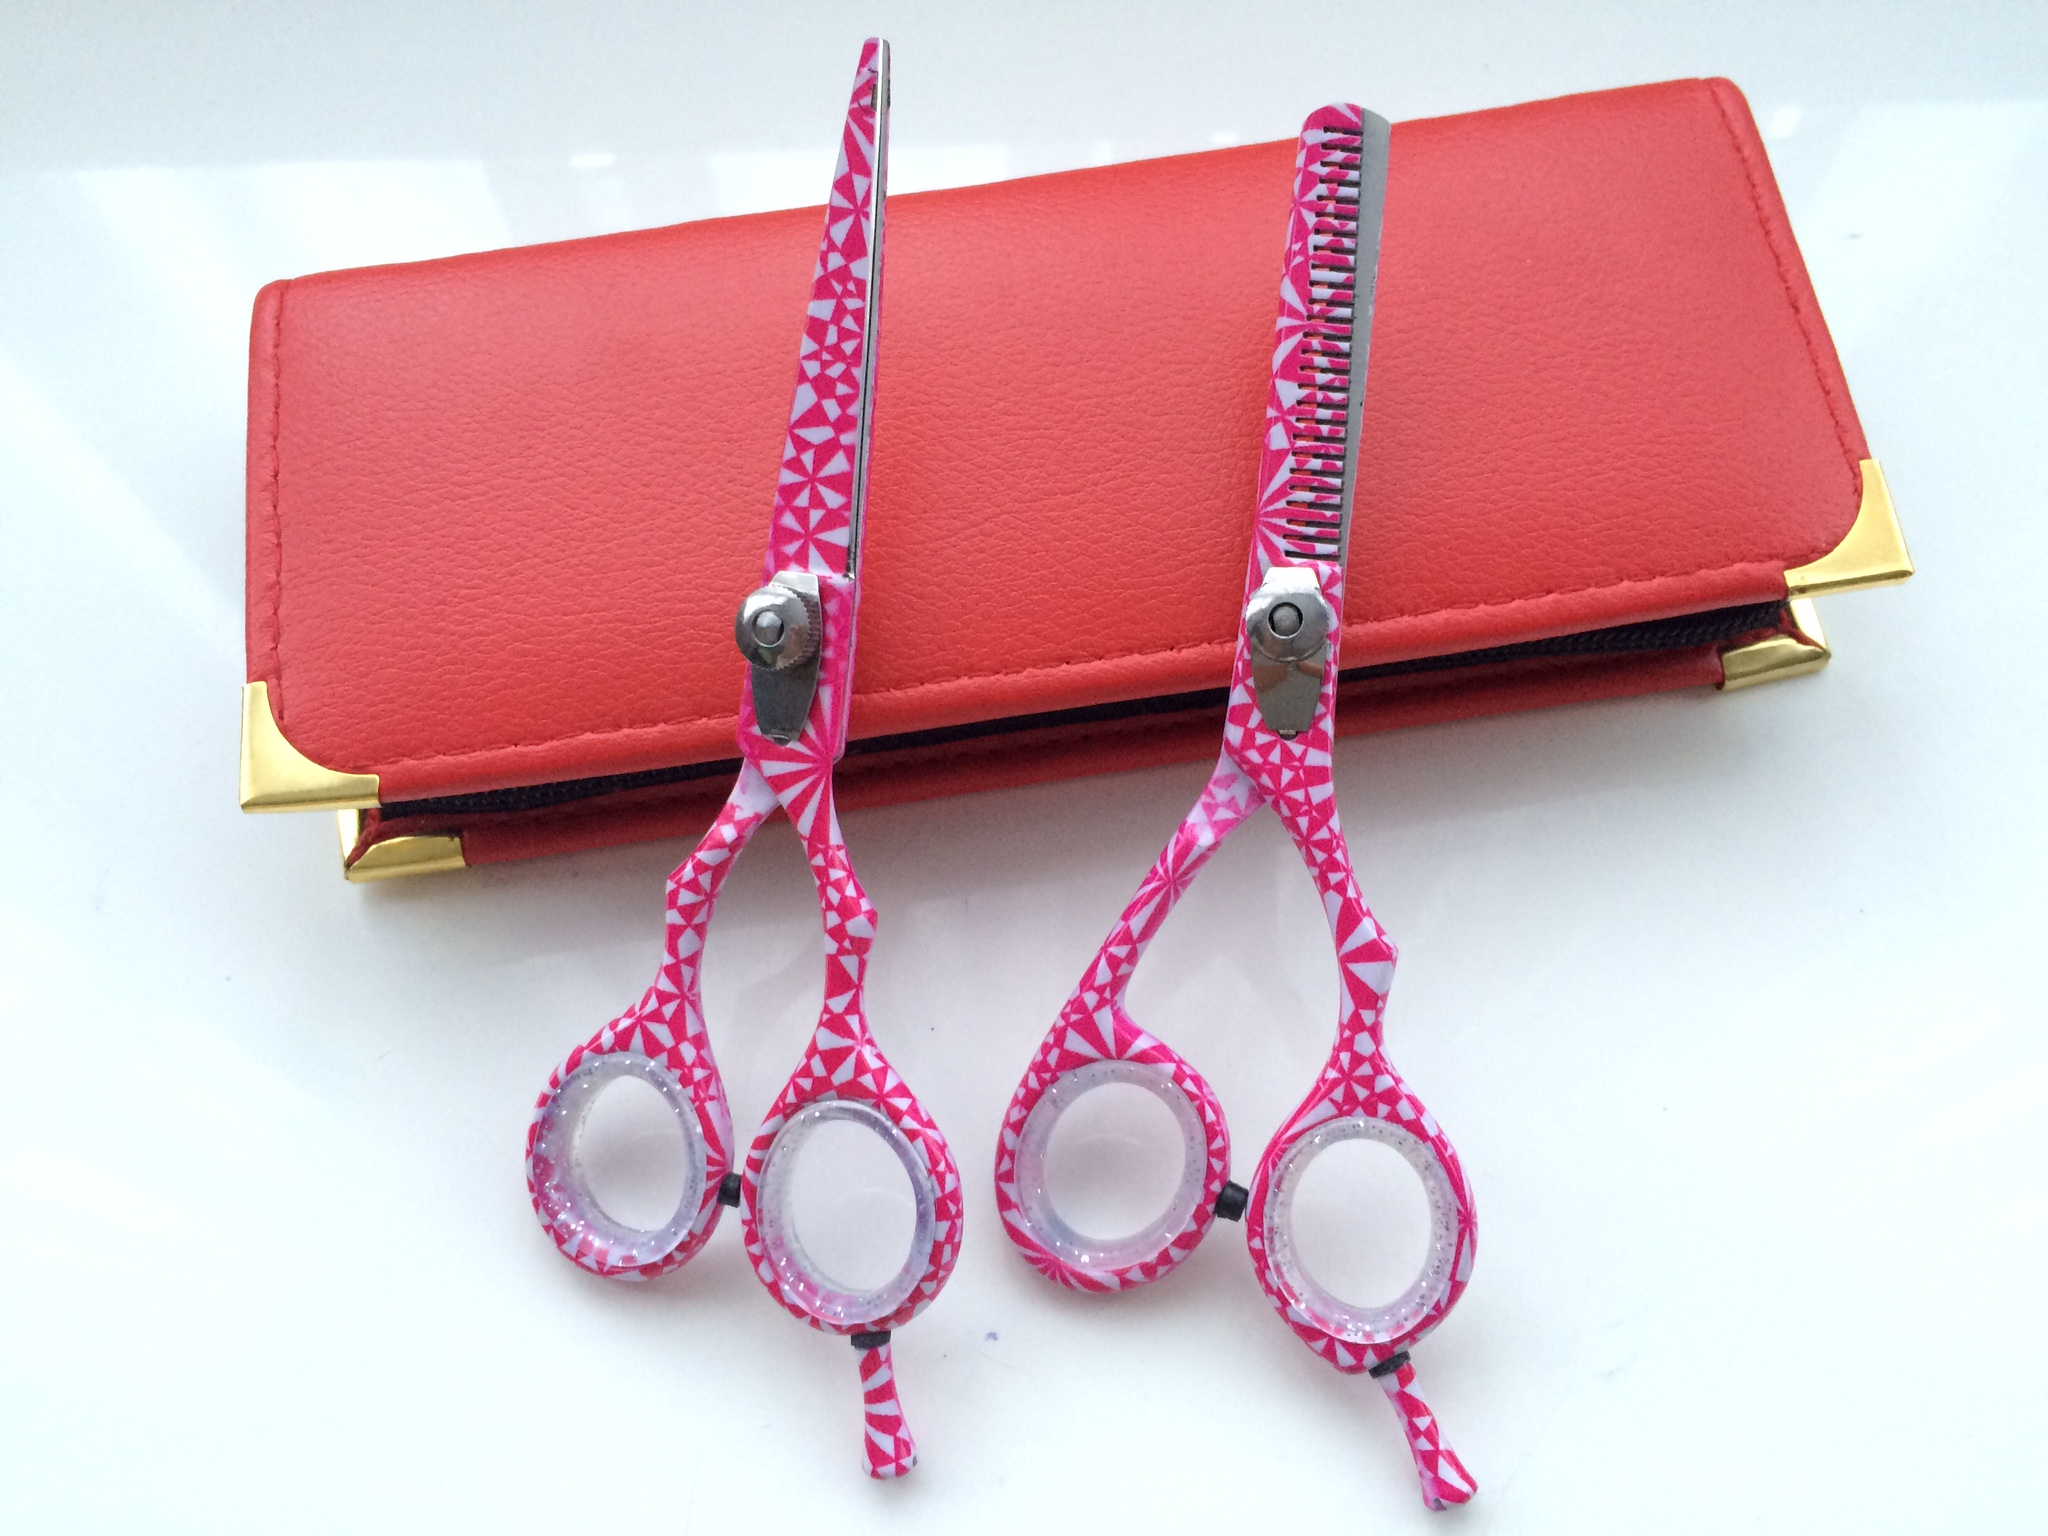 hair dressing scissor set retro pattern 5.5 inch